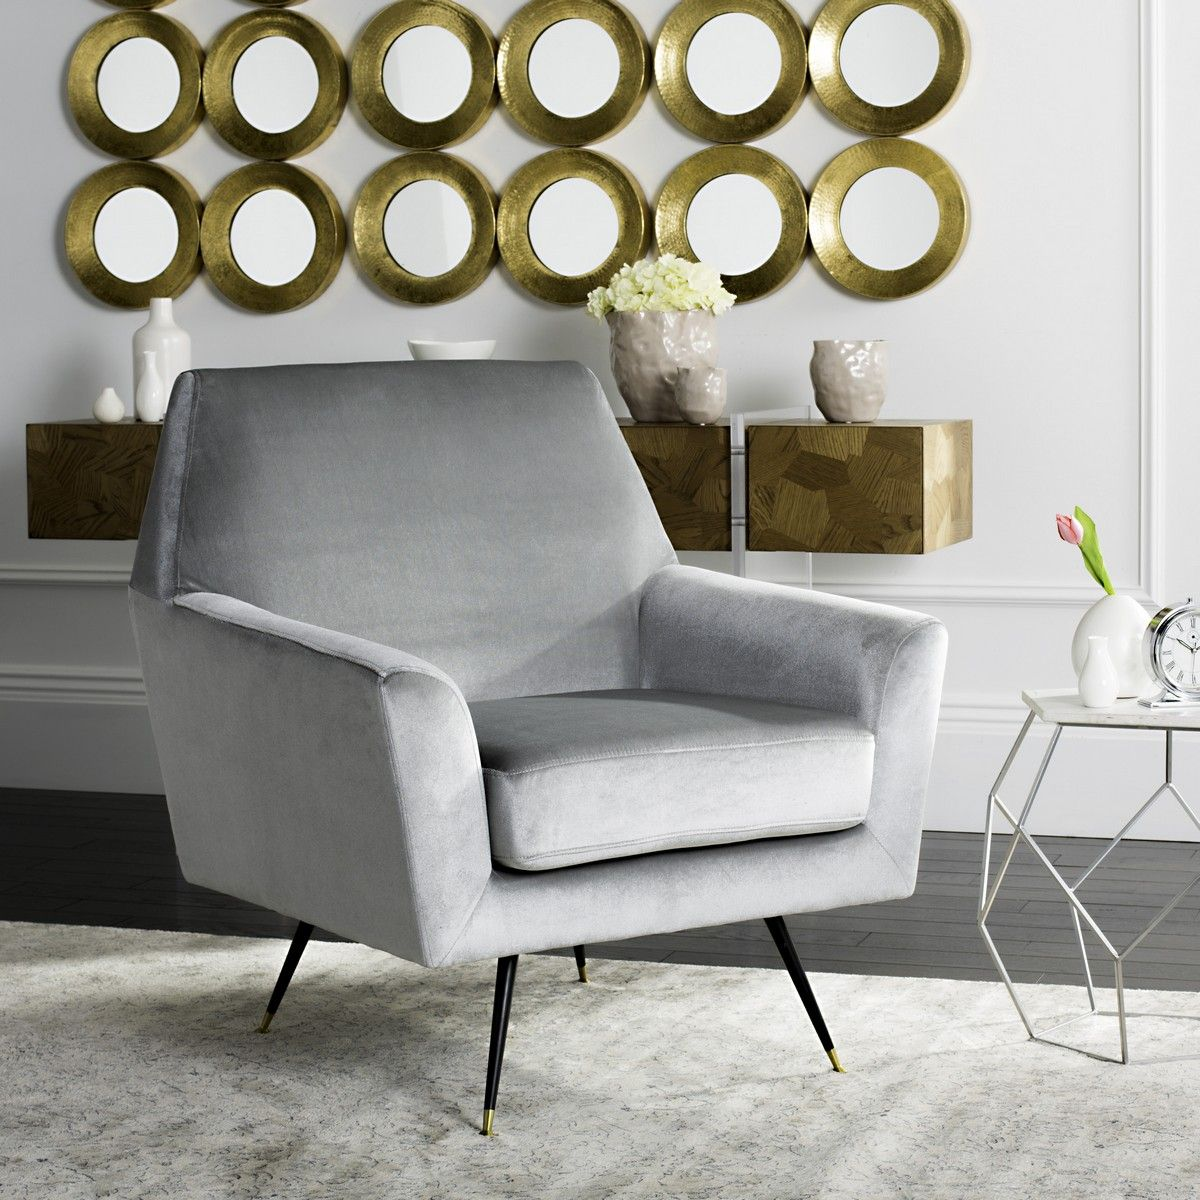 Fox6270b Accent Chairs Furniture By Safavieh Mid Century Accent Chair Modern Furniture Living Room Light Grey Accent Chair